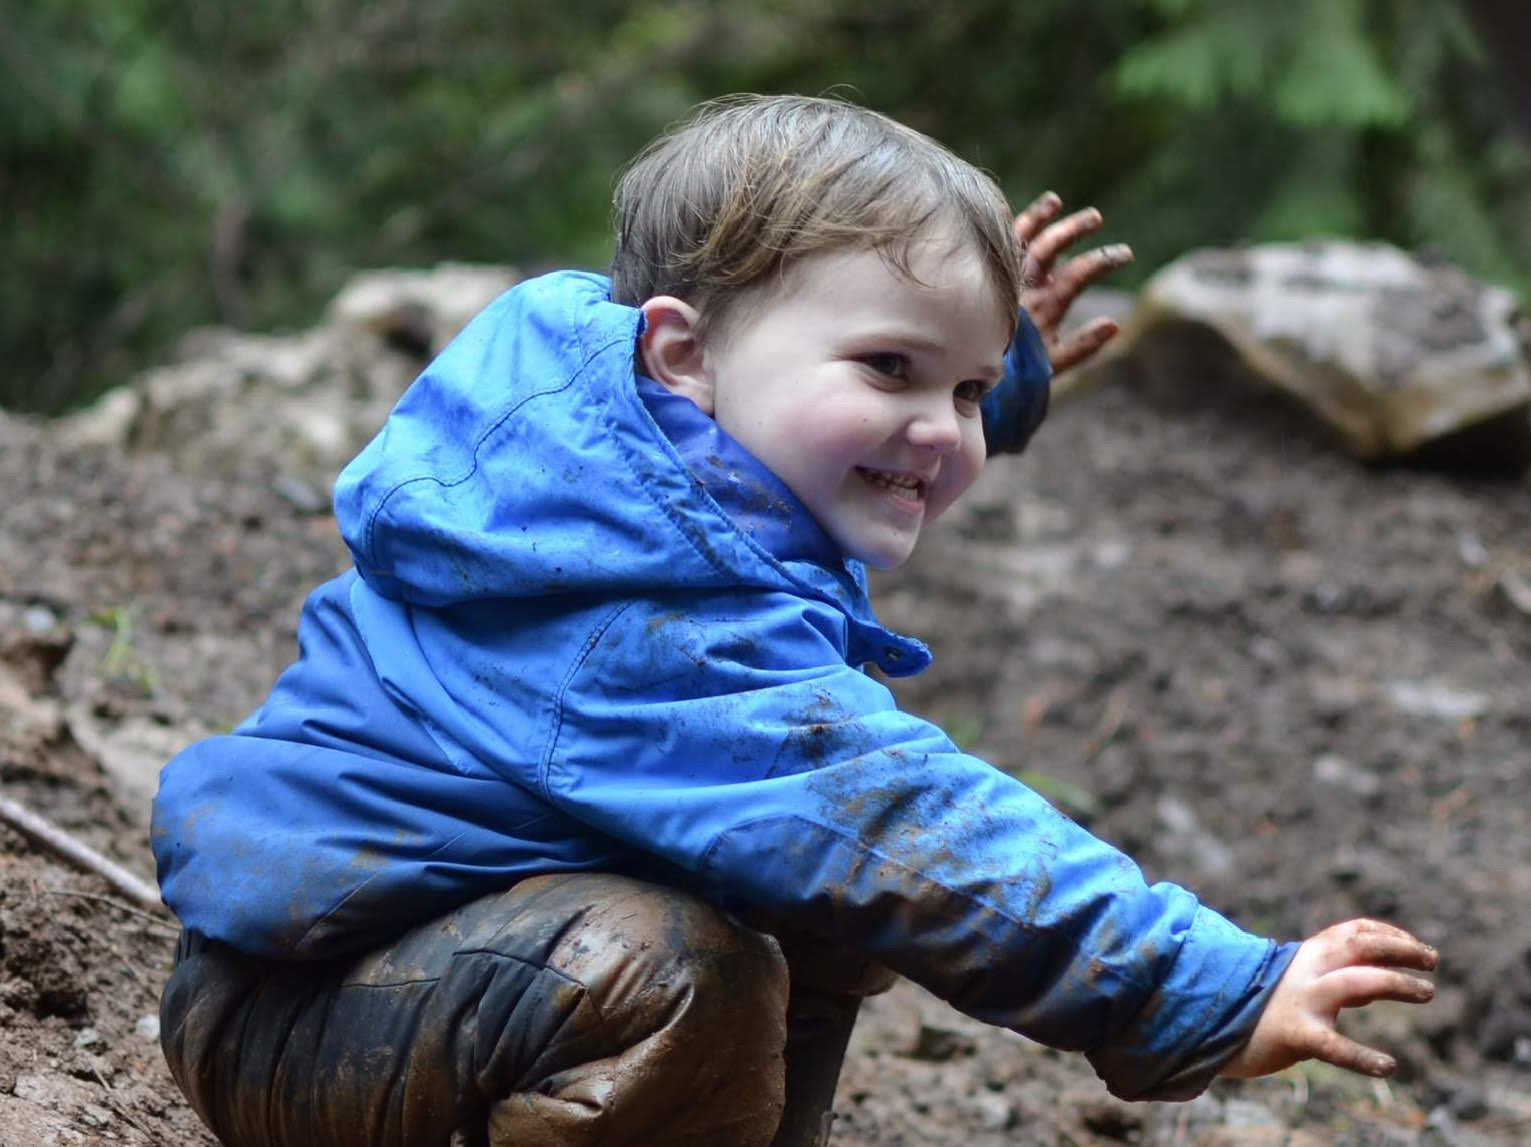 - Am I ok with my child being potentially muddy and sometimes bruised from exploring at the end of the day?